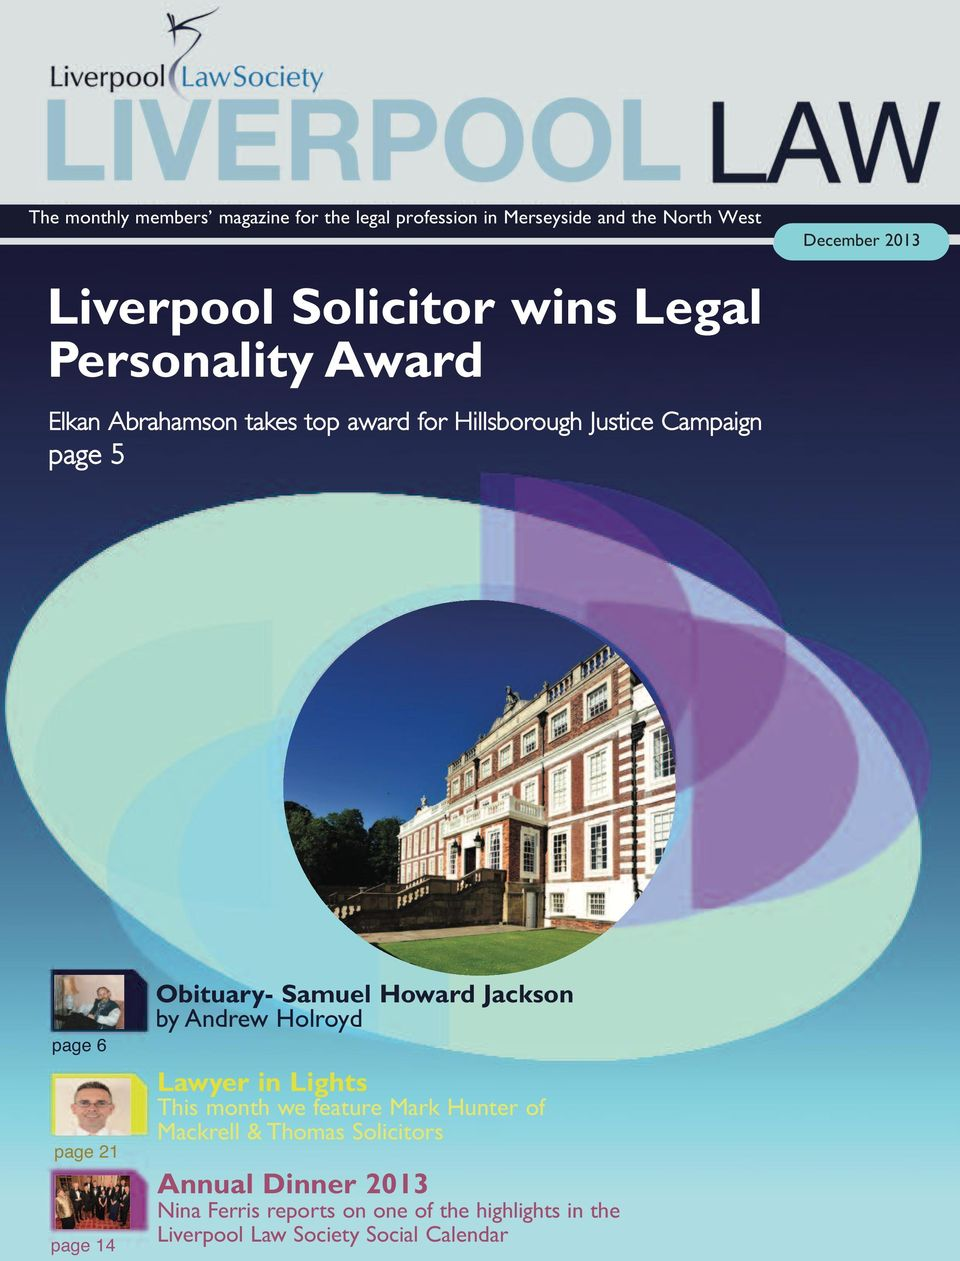 Howard Jackson by Andrew Holroyd Liverpool Legal Walk 2013 Lawyer Raising funds in Lights for NWLST This month we feature Mark Hunter of Mackrell & Thomas Solicitors Lawyer in Lights Annual